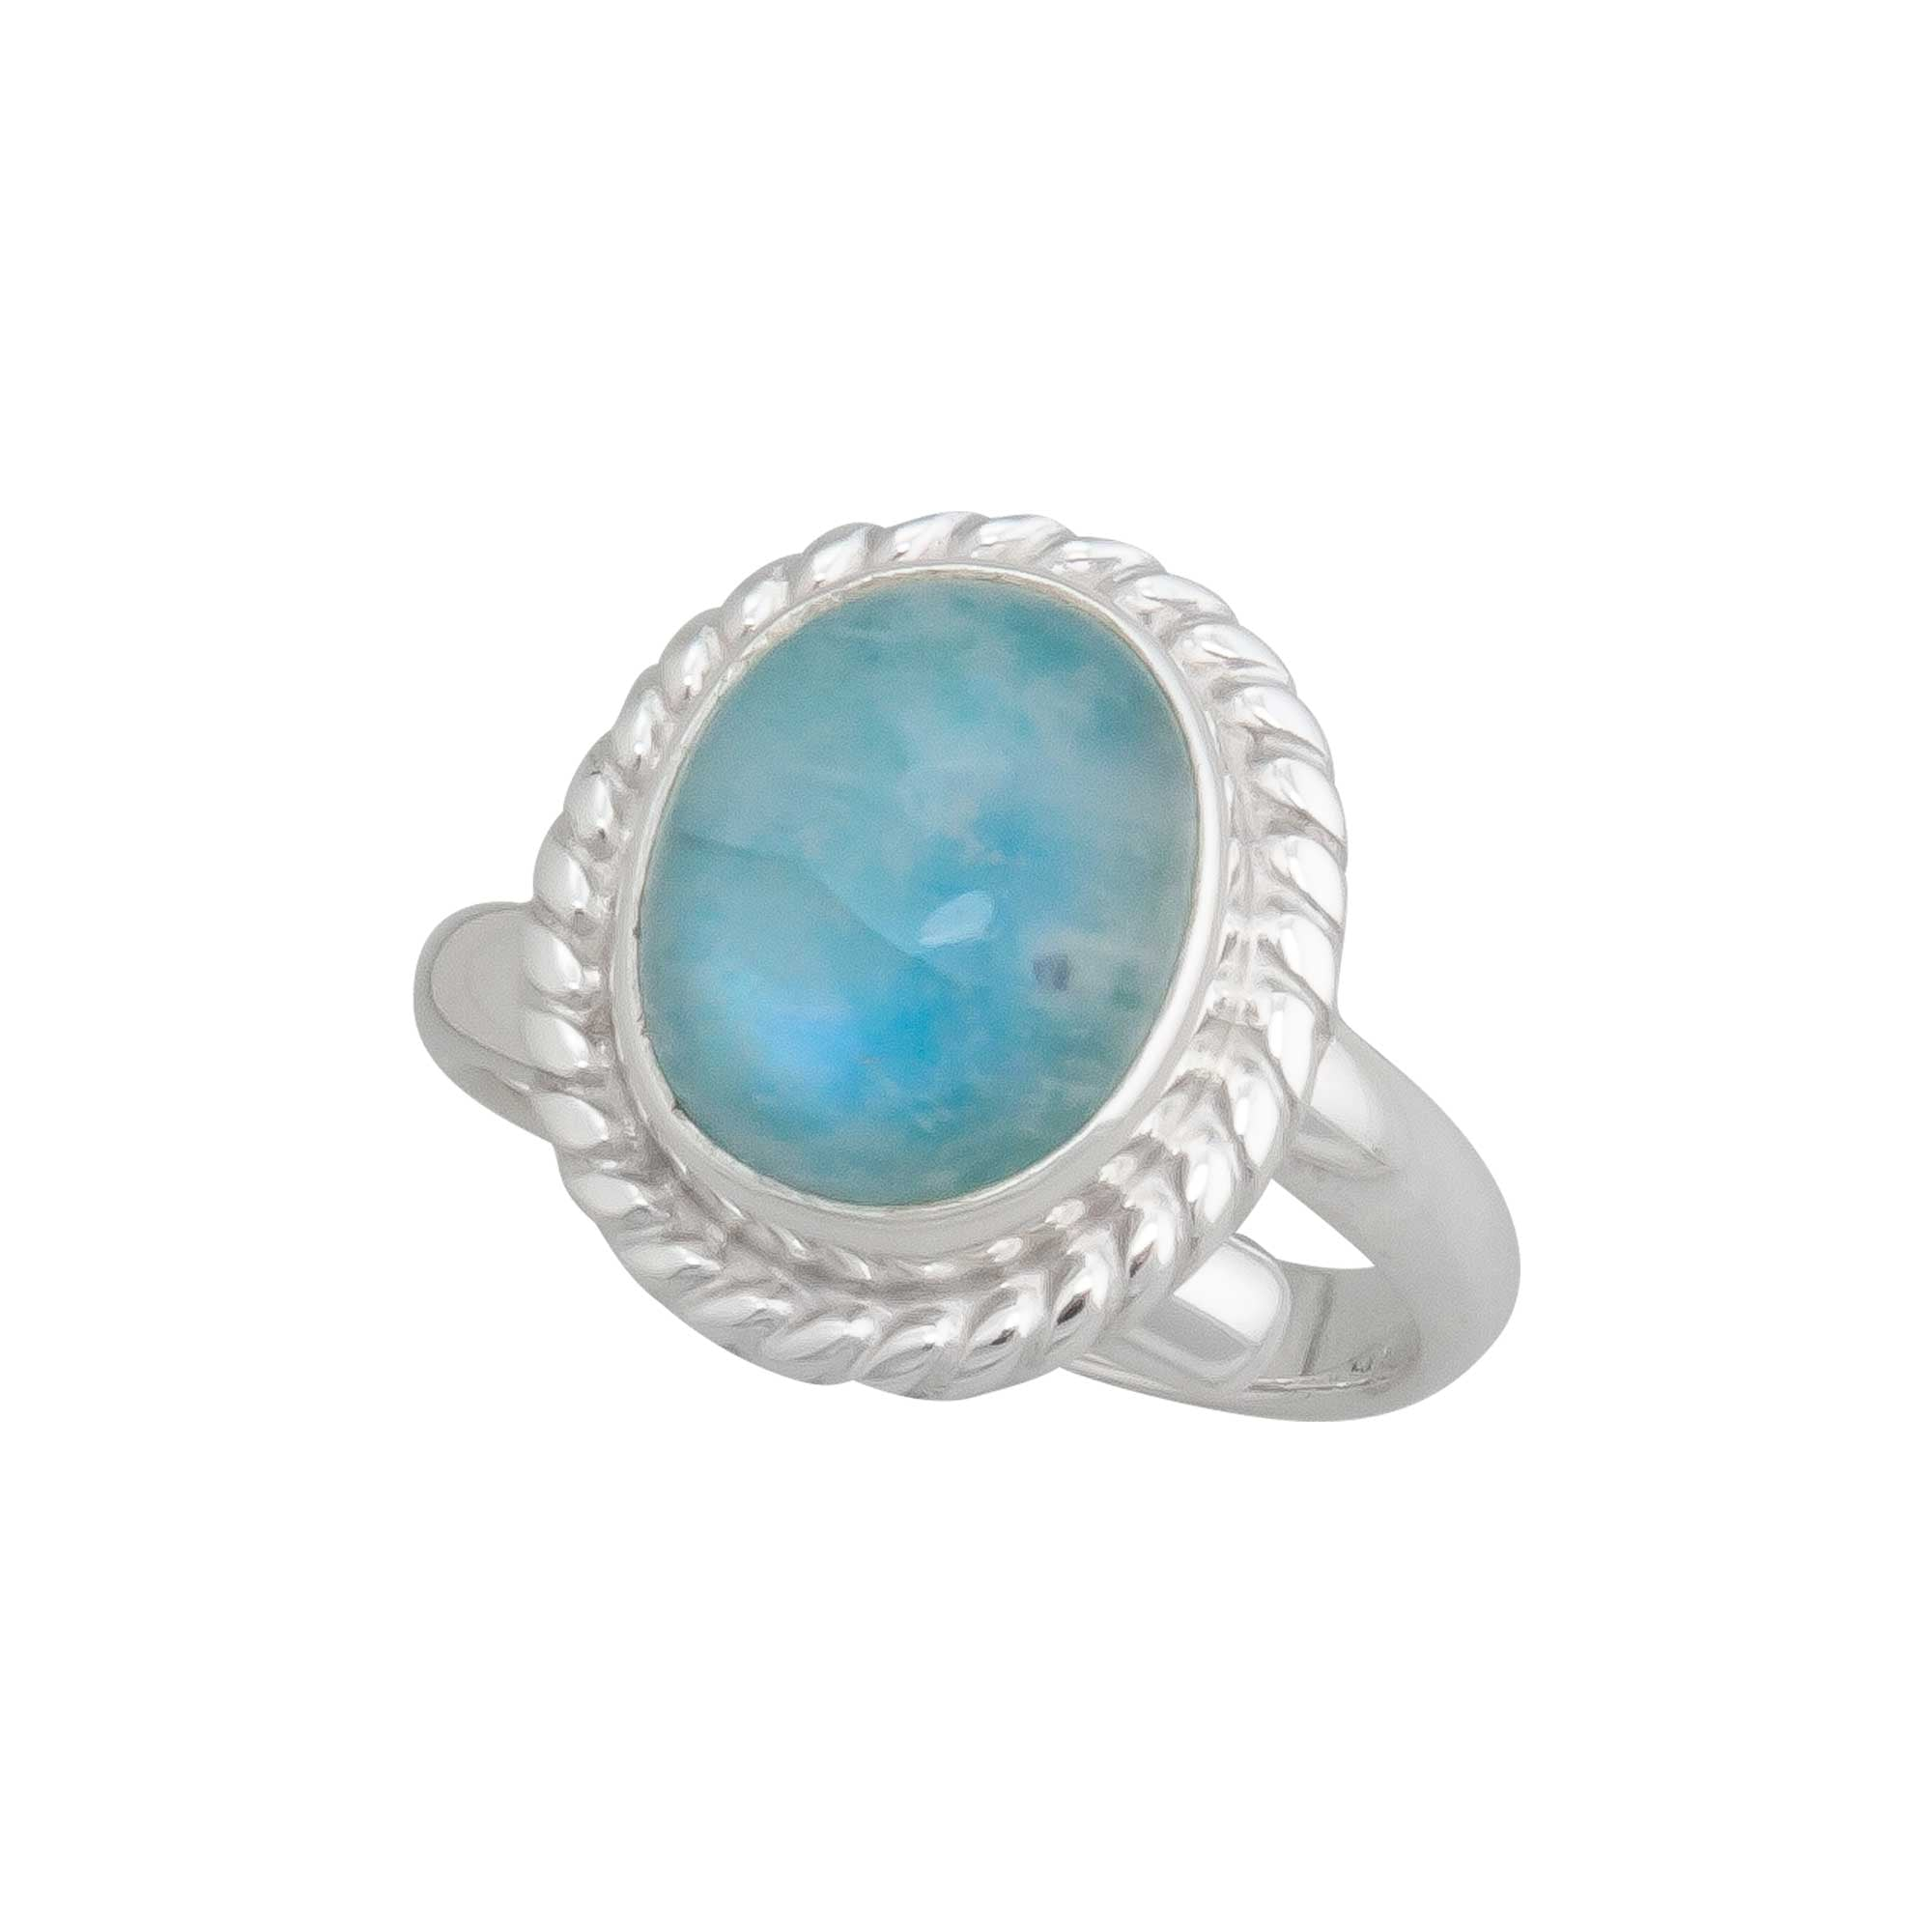 Sterling Silver Baby Blue Rainbow Moonstone Adjustable Ring with Detailed Rope Edge | Charles Albert Jewelry